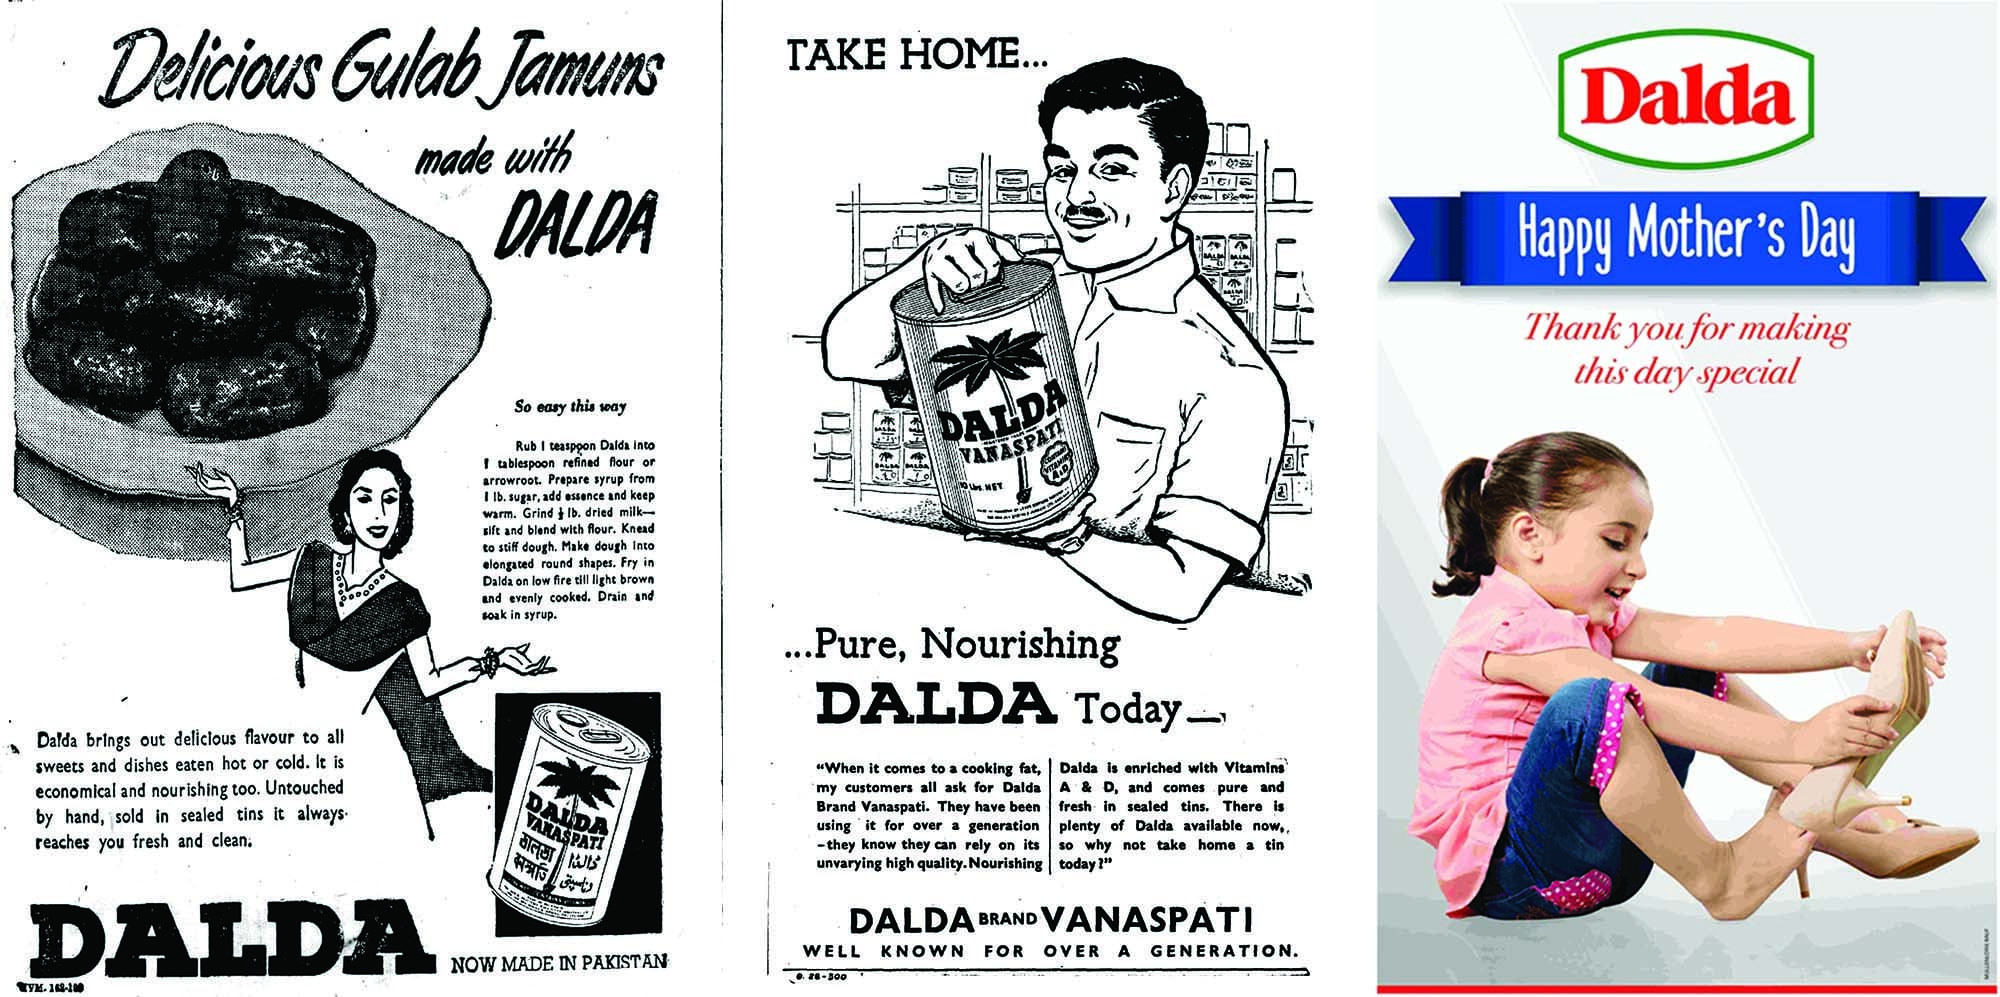 Dalda ads from 1952, 1961 and 2017